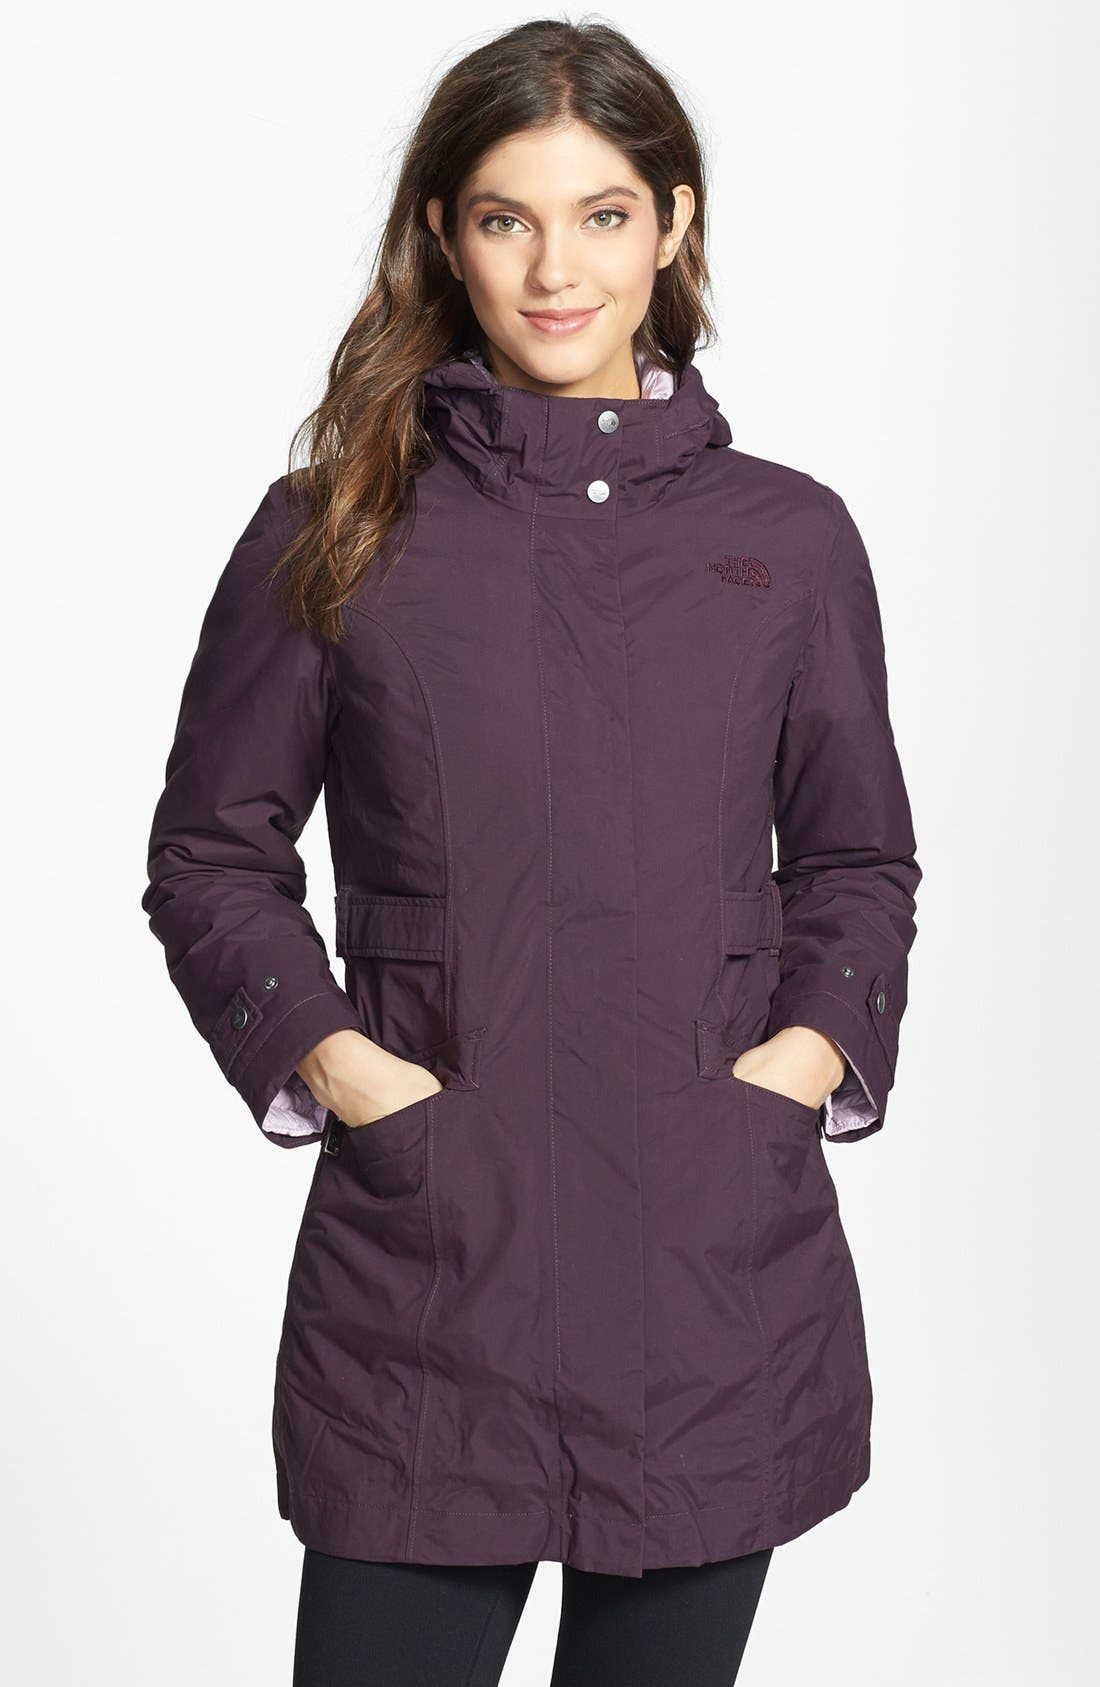 Main Image - The North Face 'Laney' TriClimate® 3-in-1 Jacket